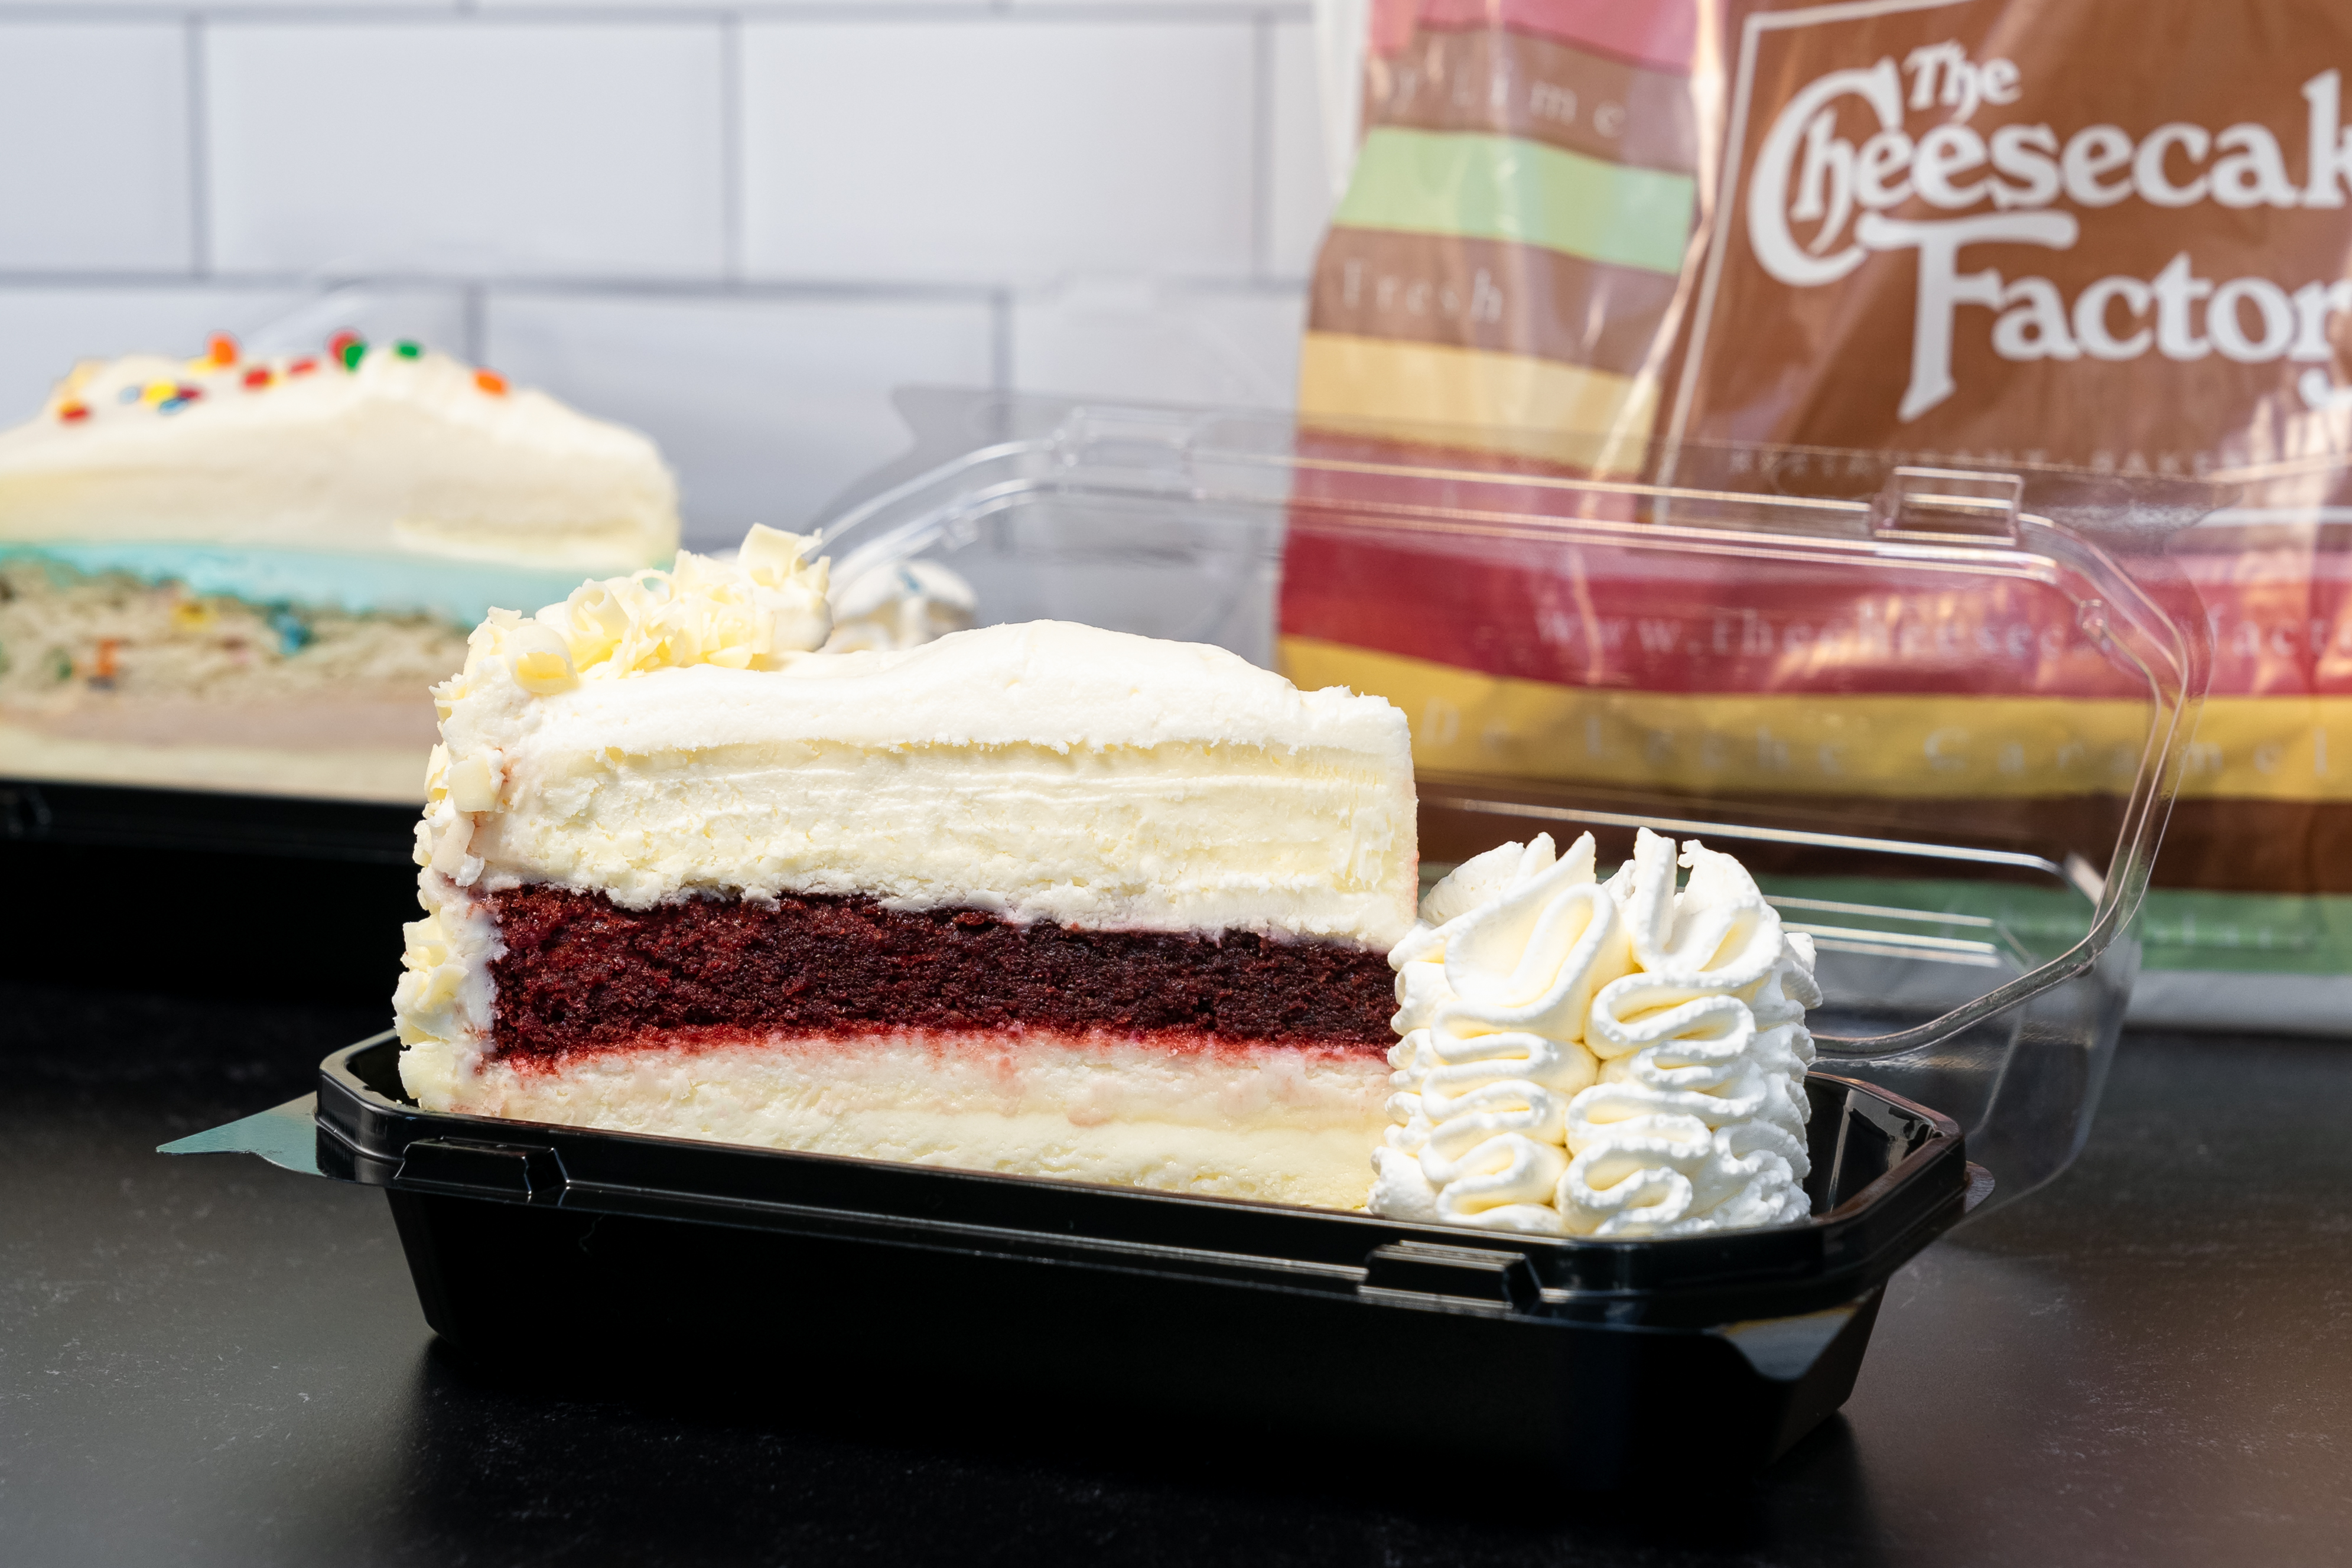 Here's How You Can Get a Free Slice of Cheesecake from The Cheesecake Factory for the Next Month